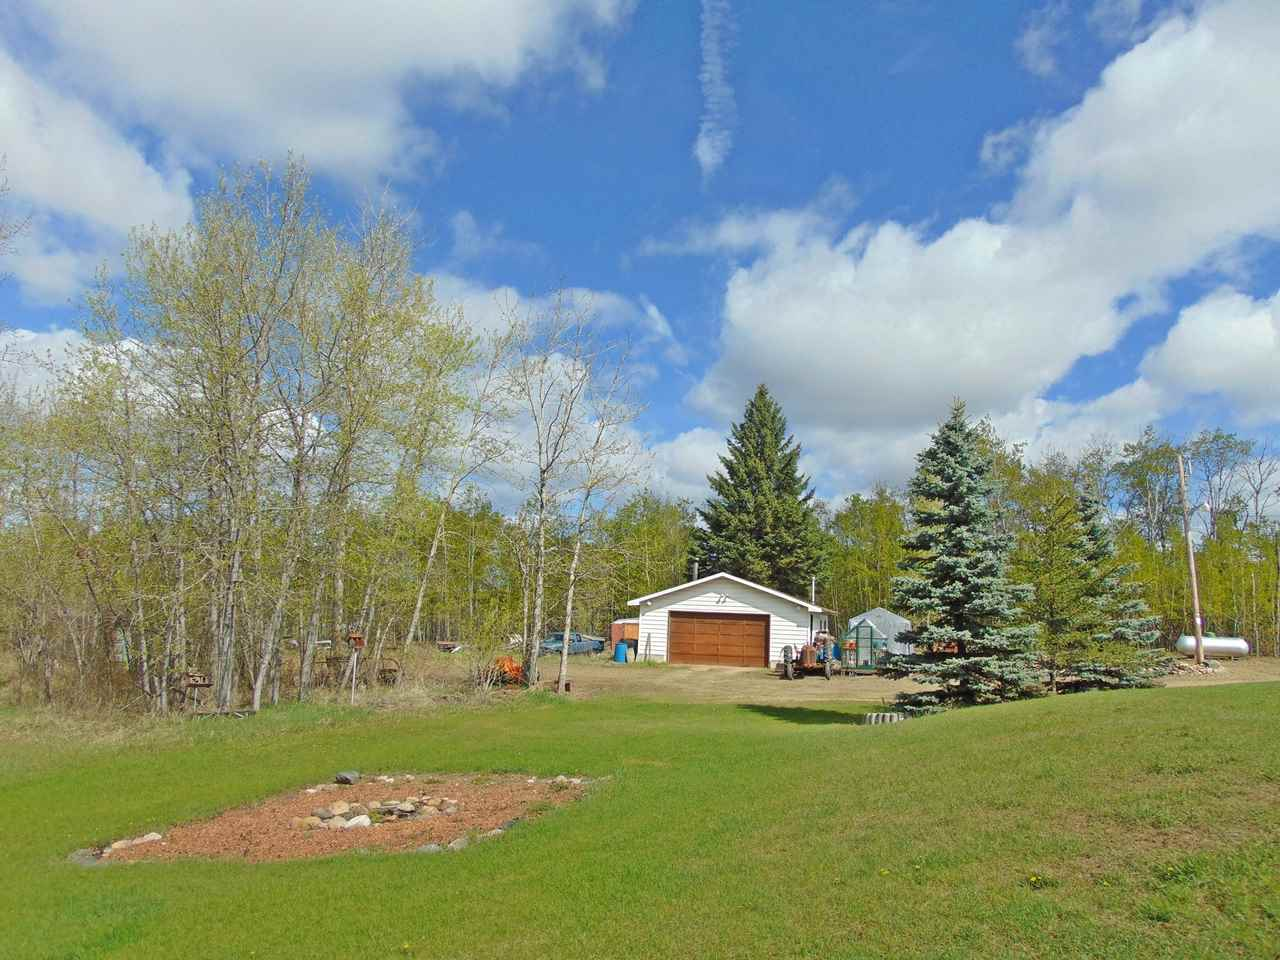 Photo 5: 57130 Rg Rd 230: Rural Sturgeon County House for sale : MLS(r) # E4064722